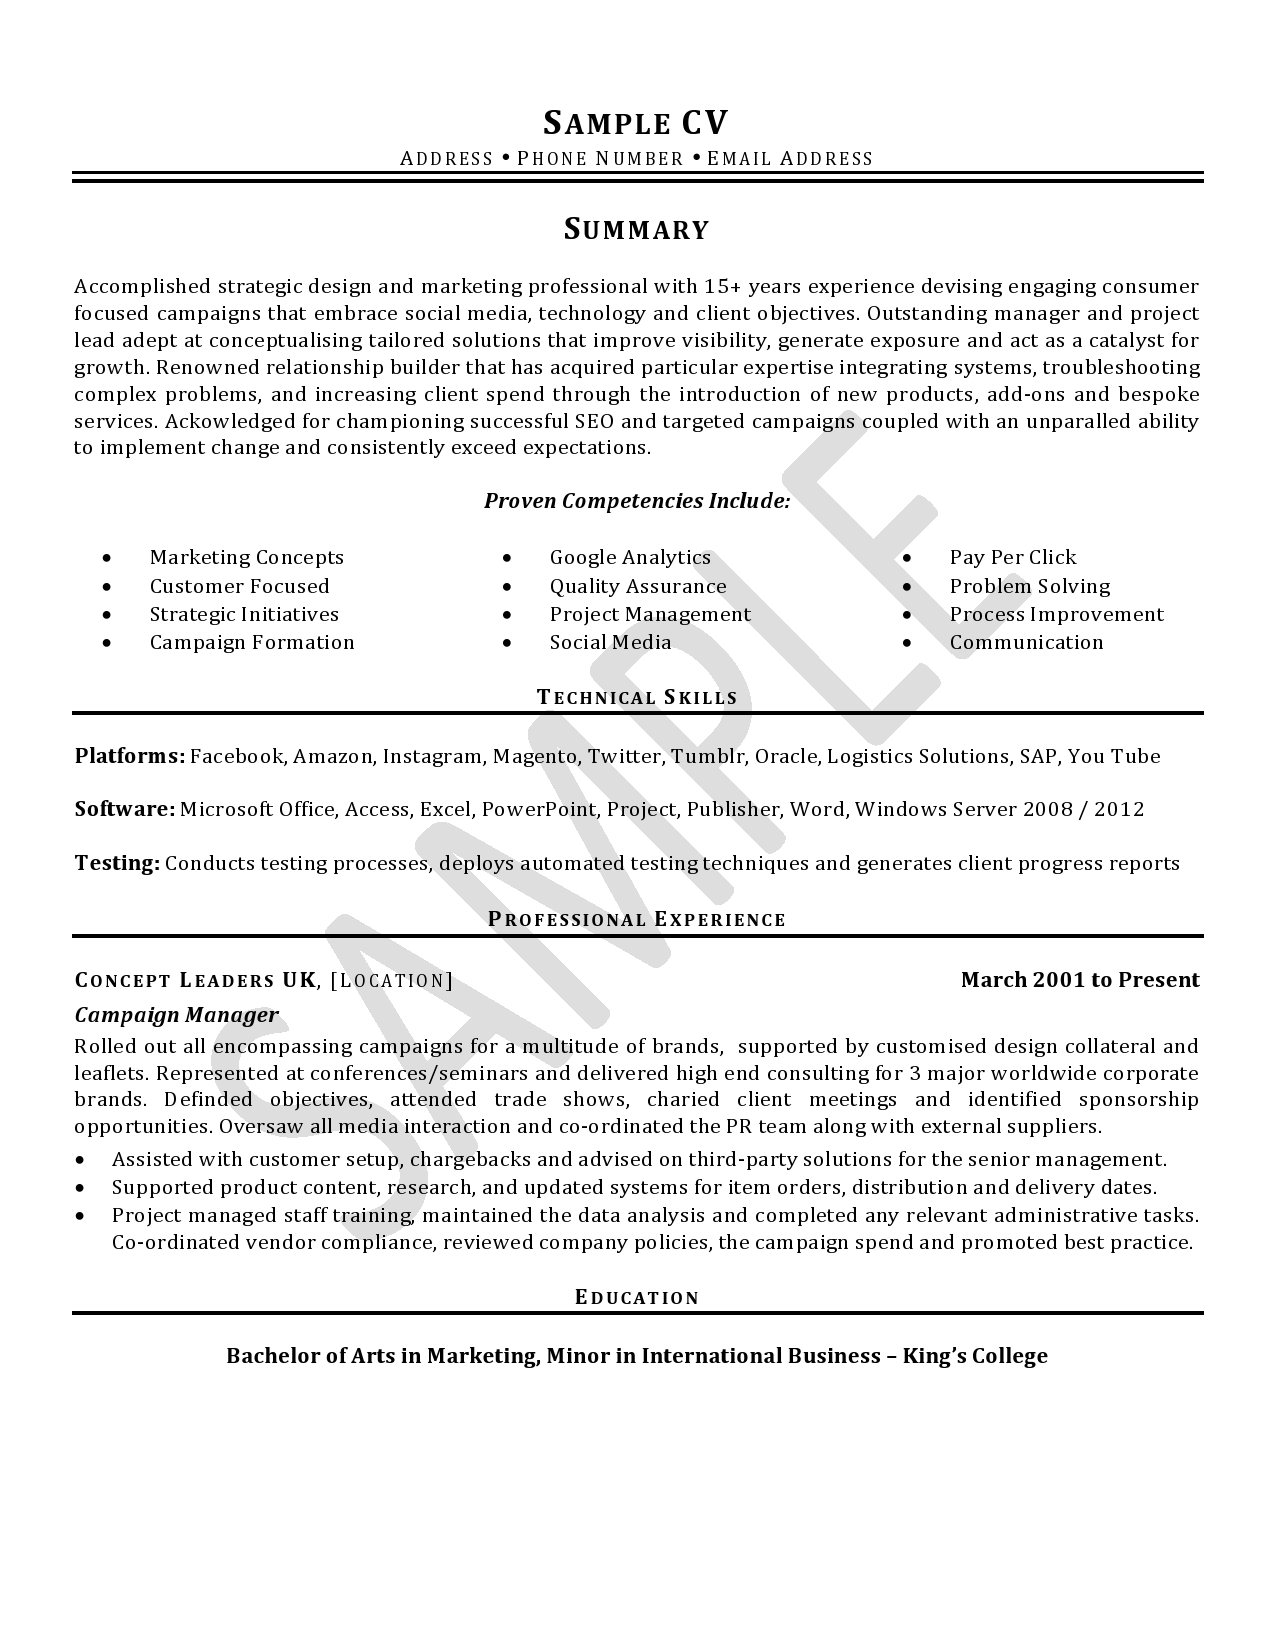 writing center unc thesis statement Thesis statements - the writing center 1/3/15, 9:54 am page 1 of 3 the writing center thesis statements.